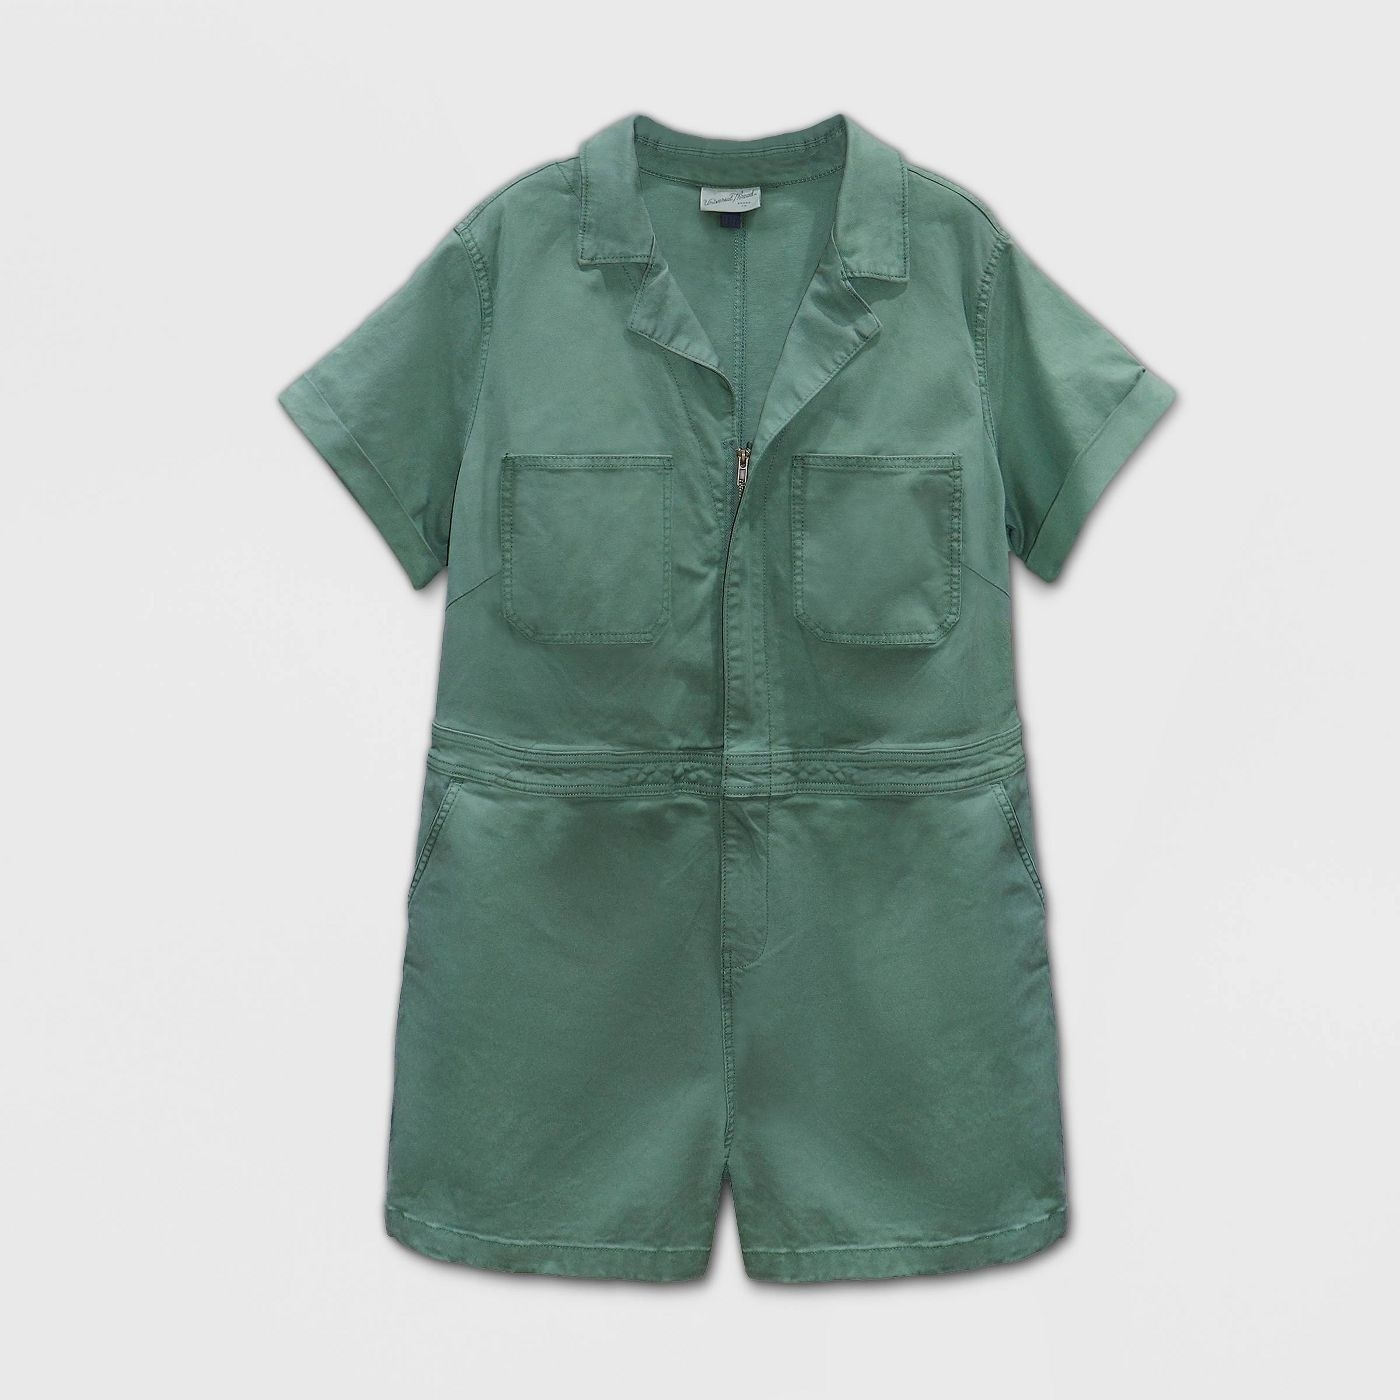 A short-sleeved zippered jumpsuit in green